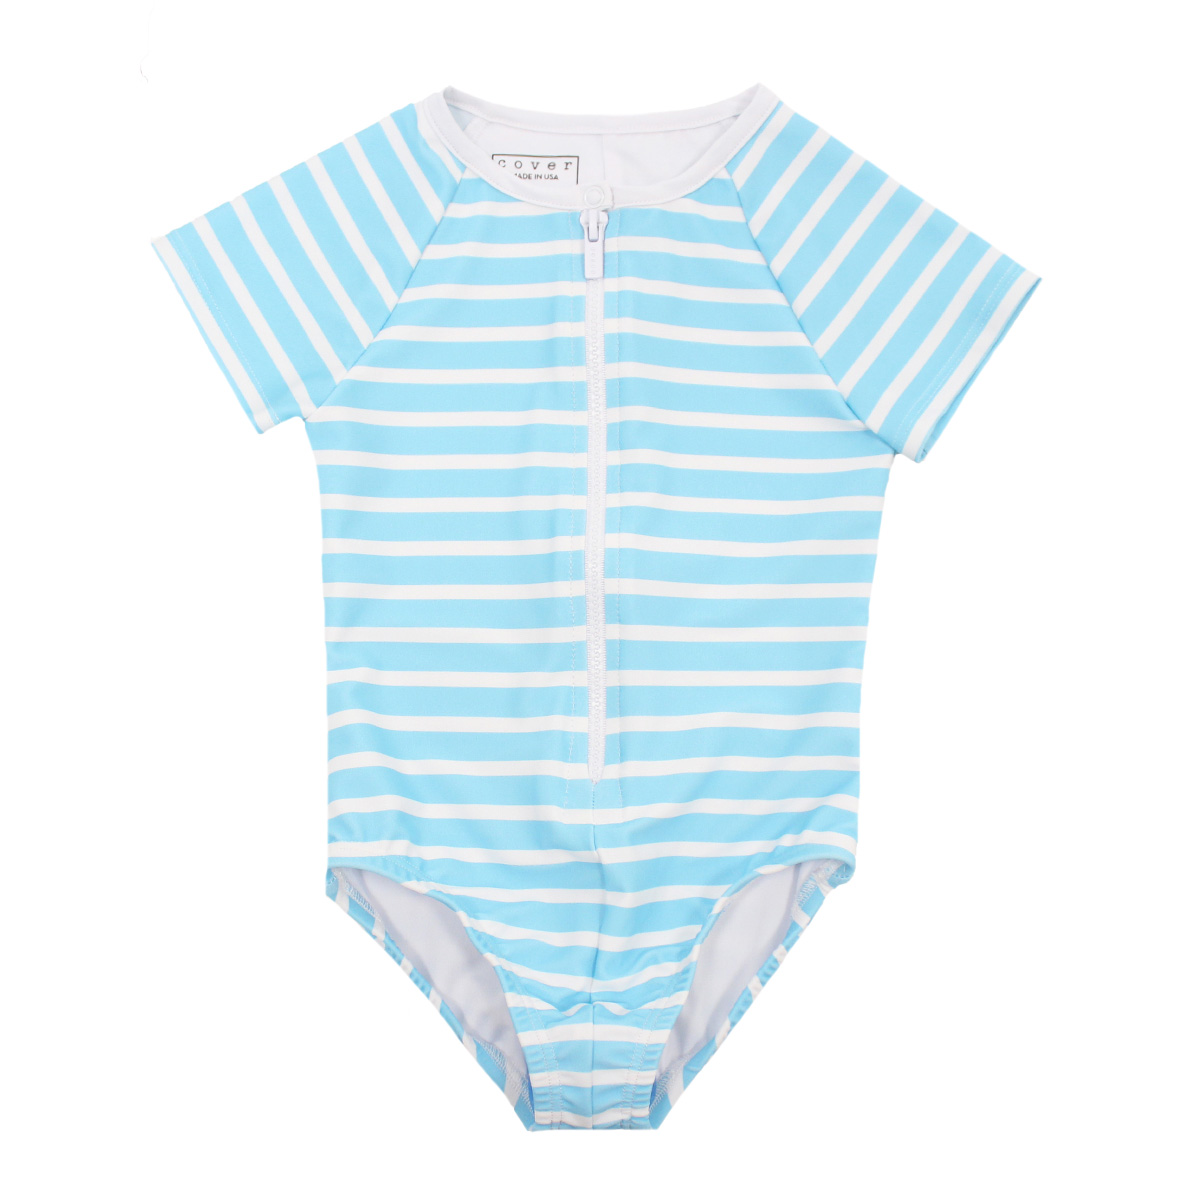 Cover Swim x The Tot Short Sleeve Zip Front Swimsuit in Blue Stripe